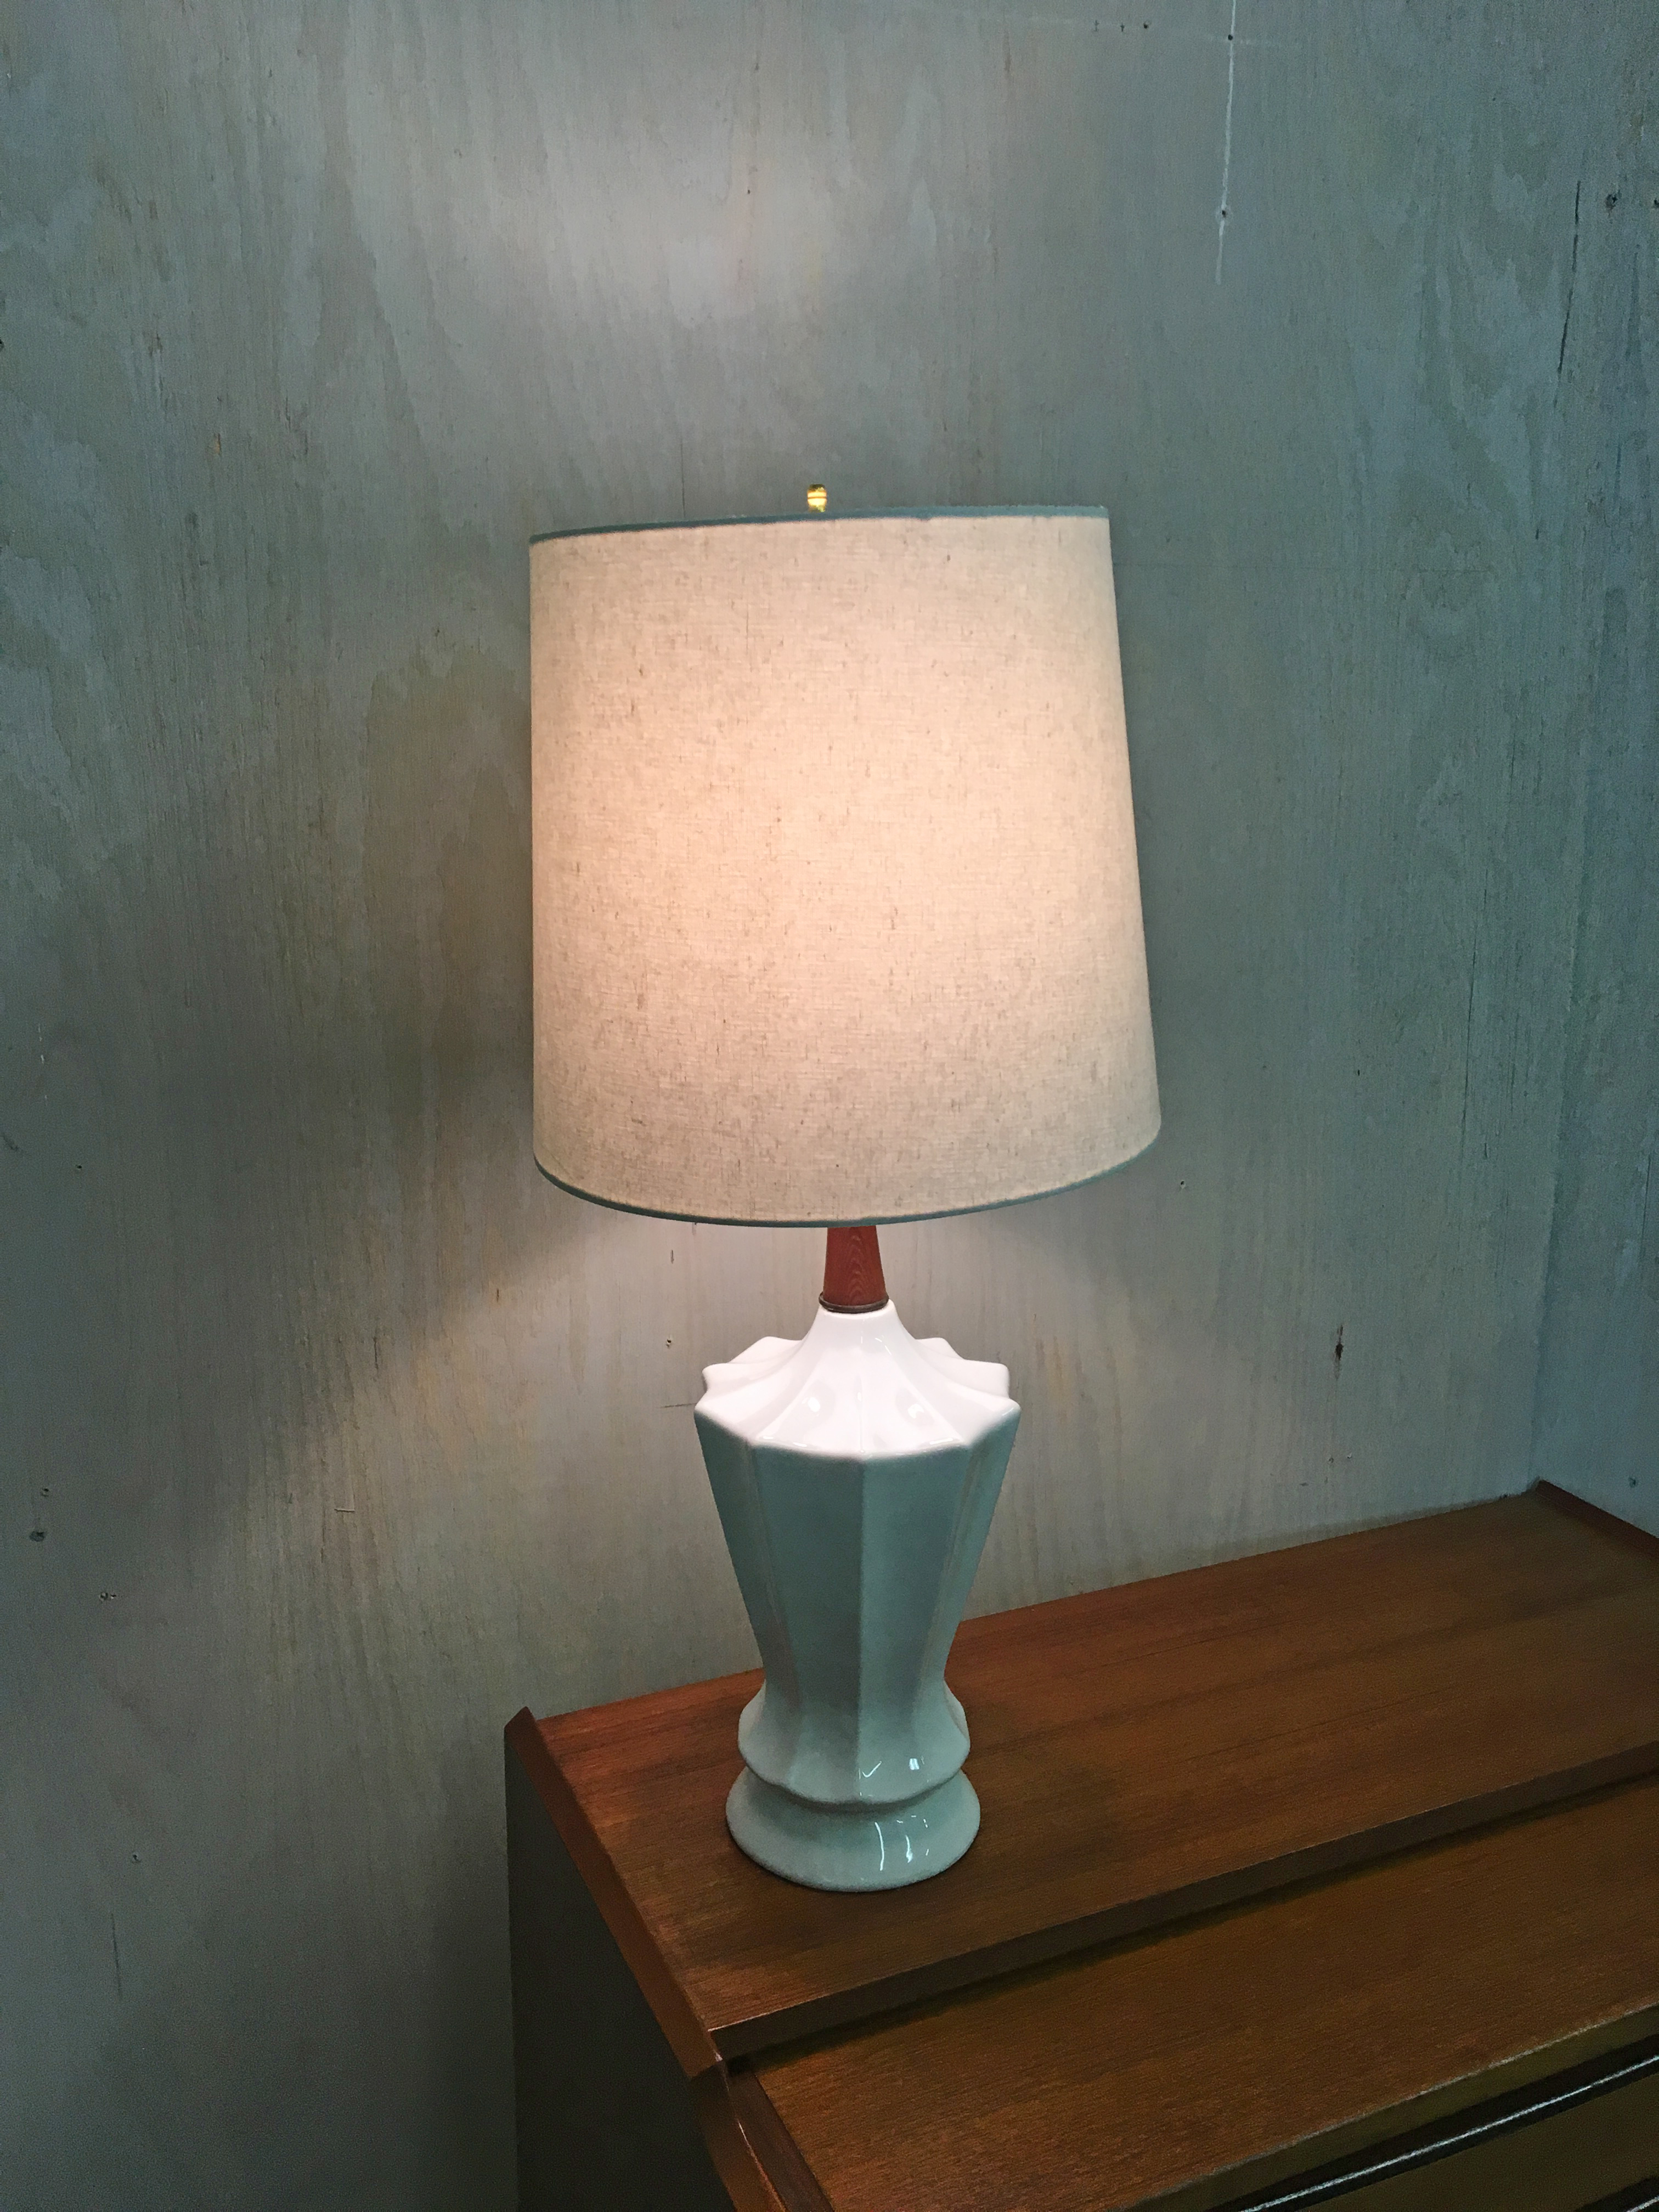 Pair of White Ceramic Table Lamps